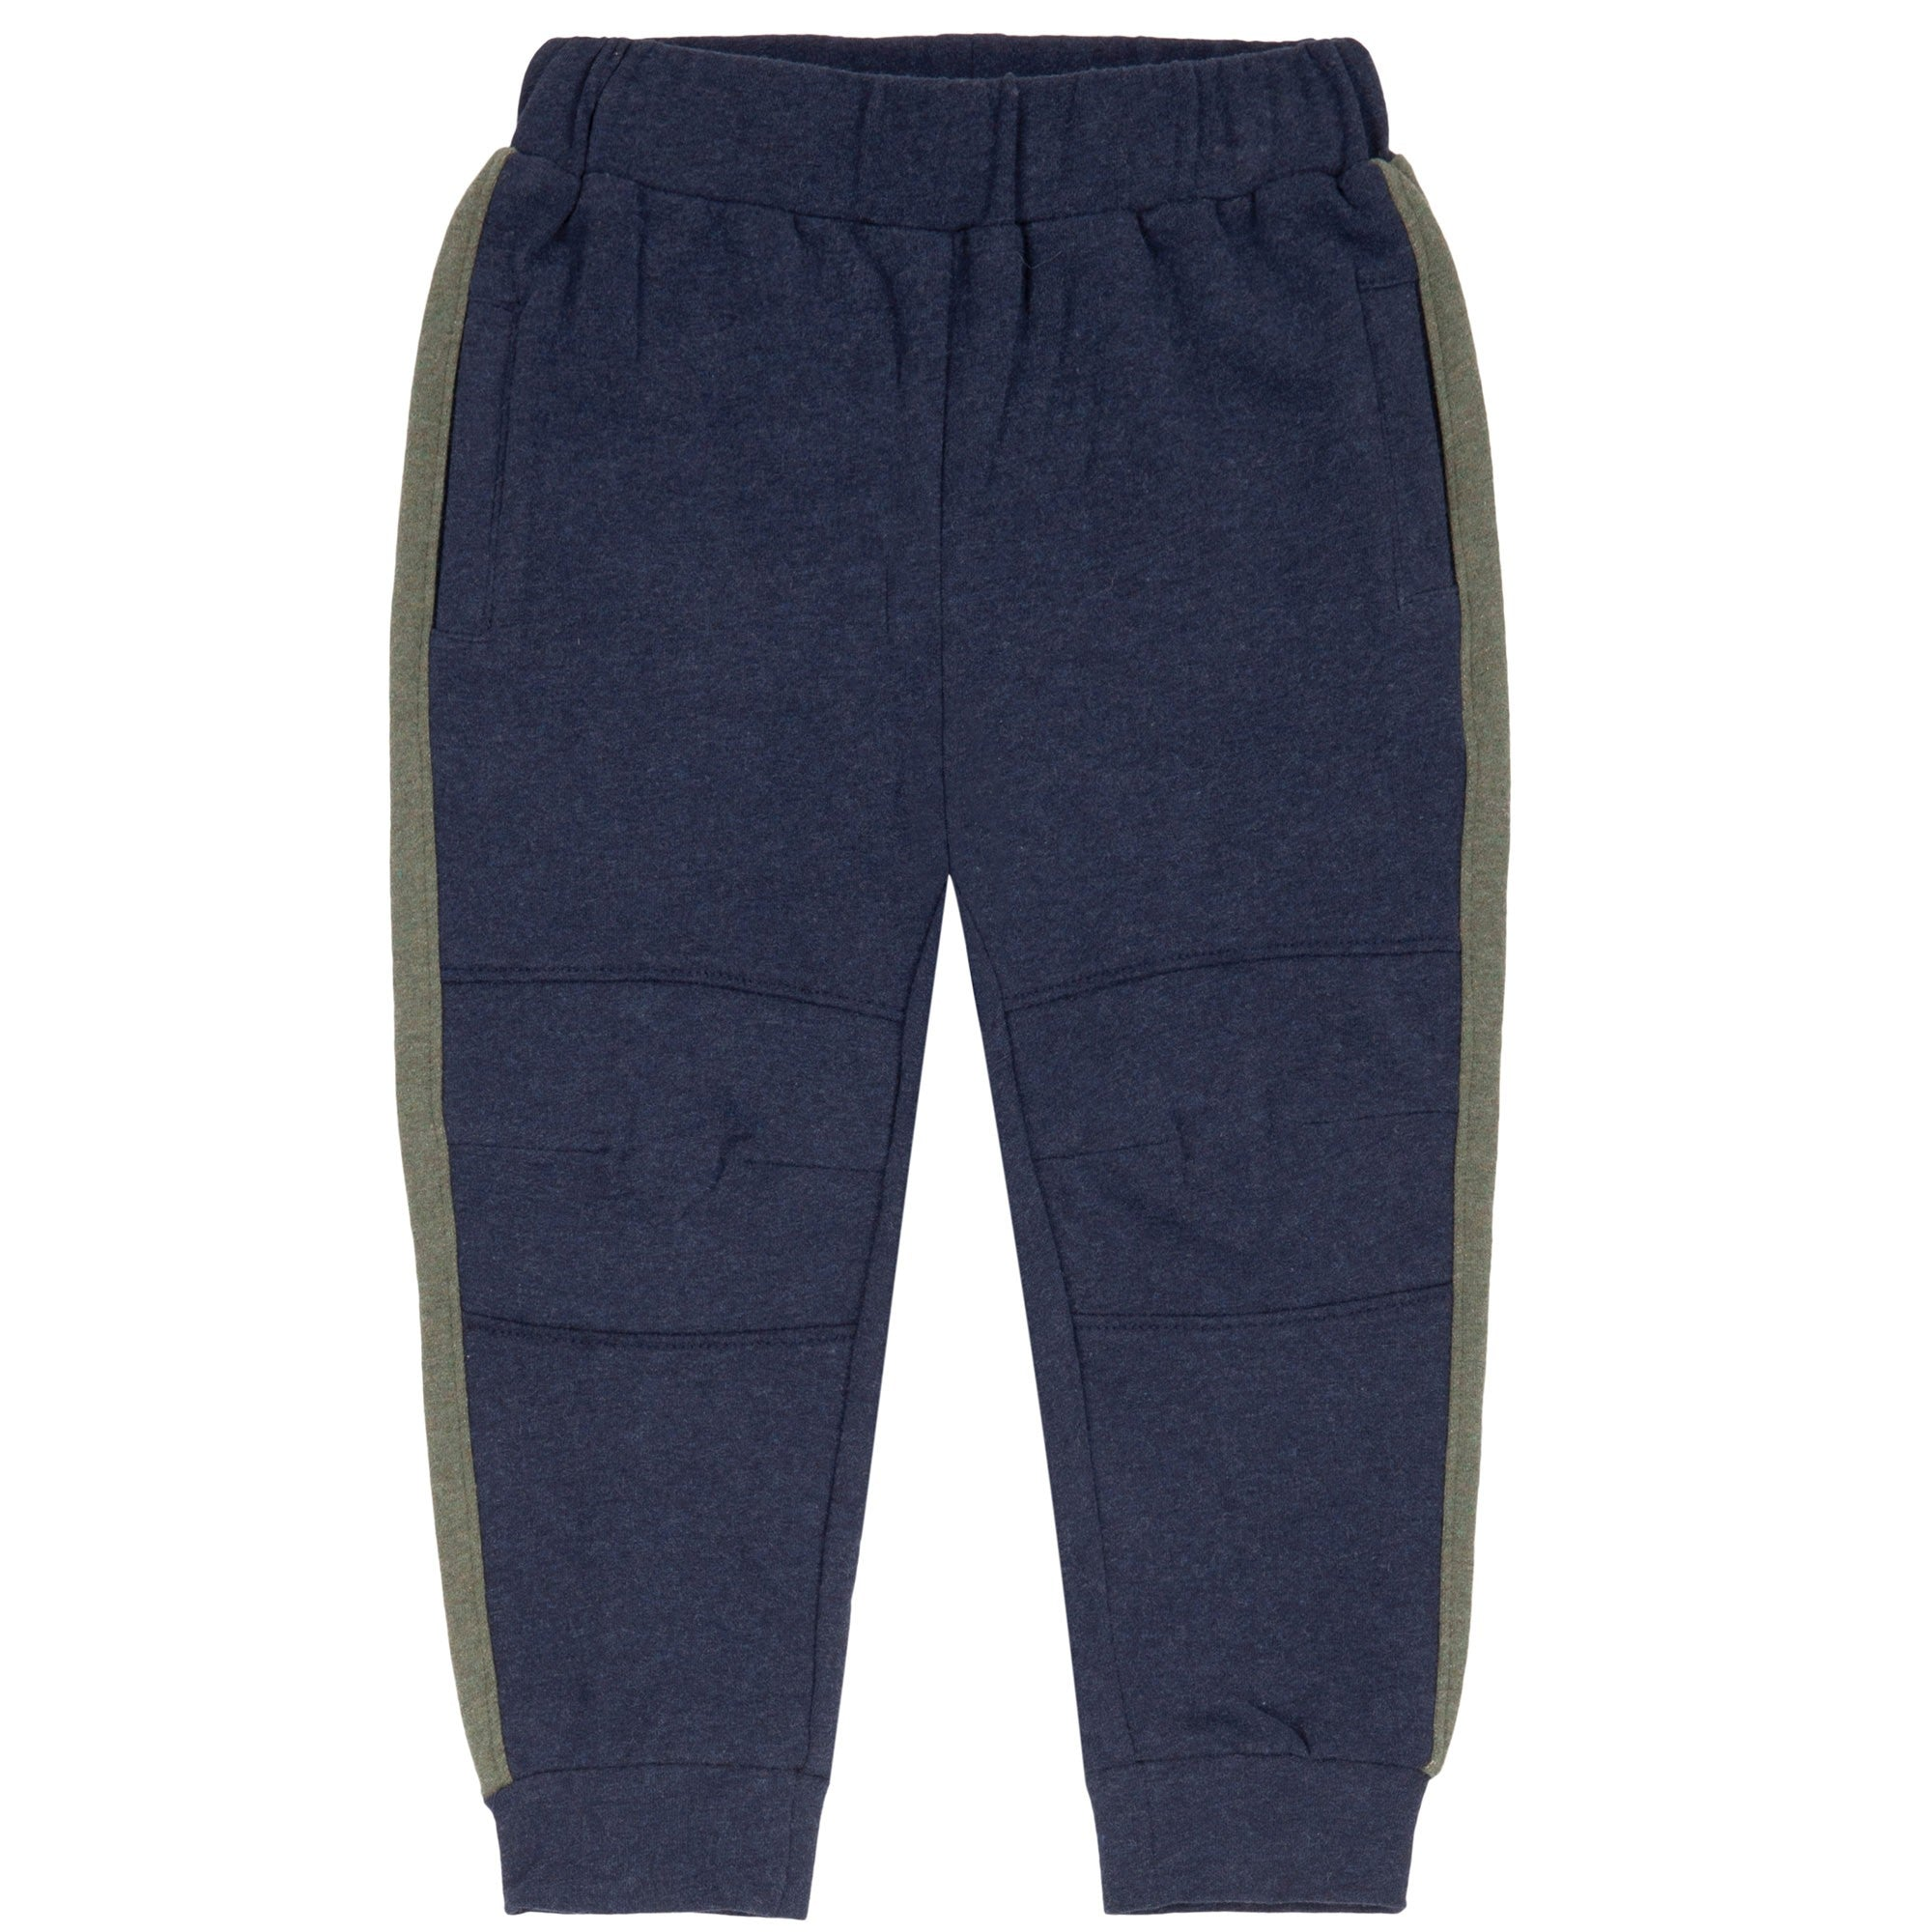 Navy Blue Jogger Fleece Pants